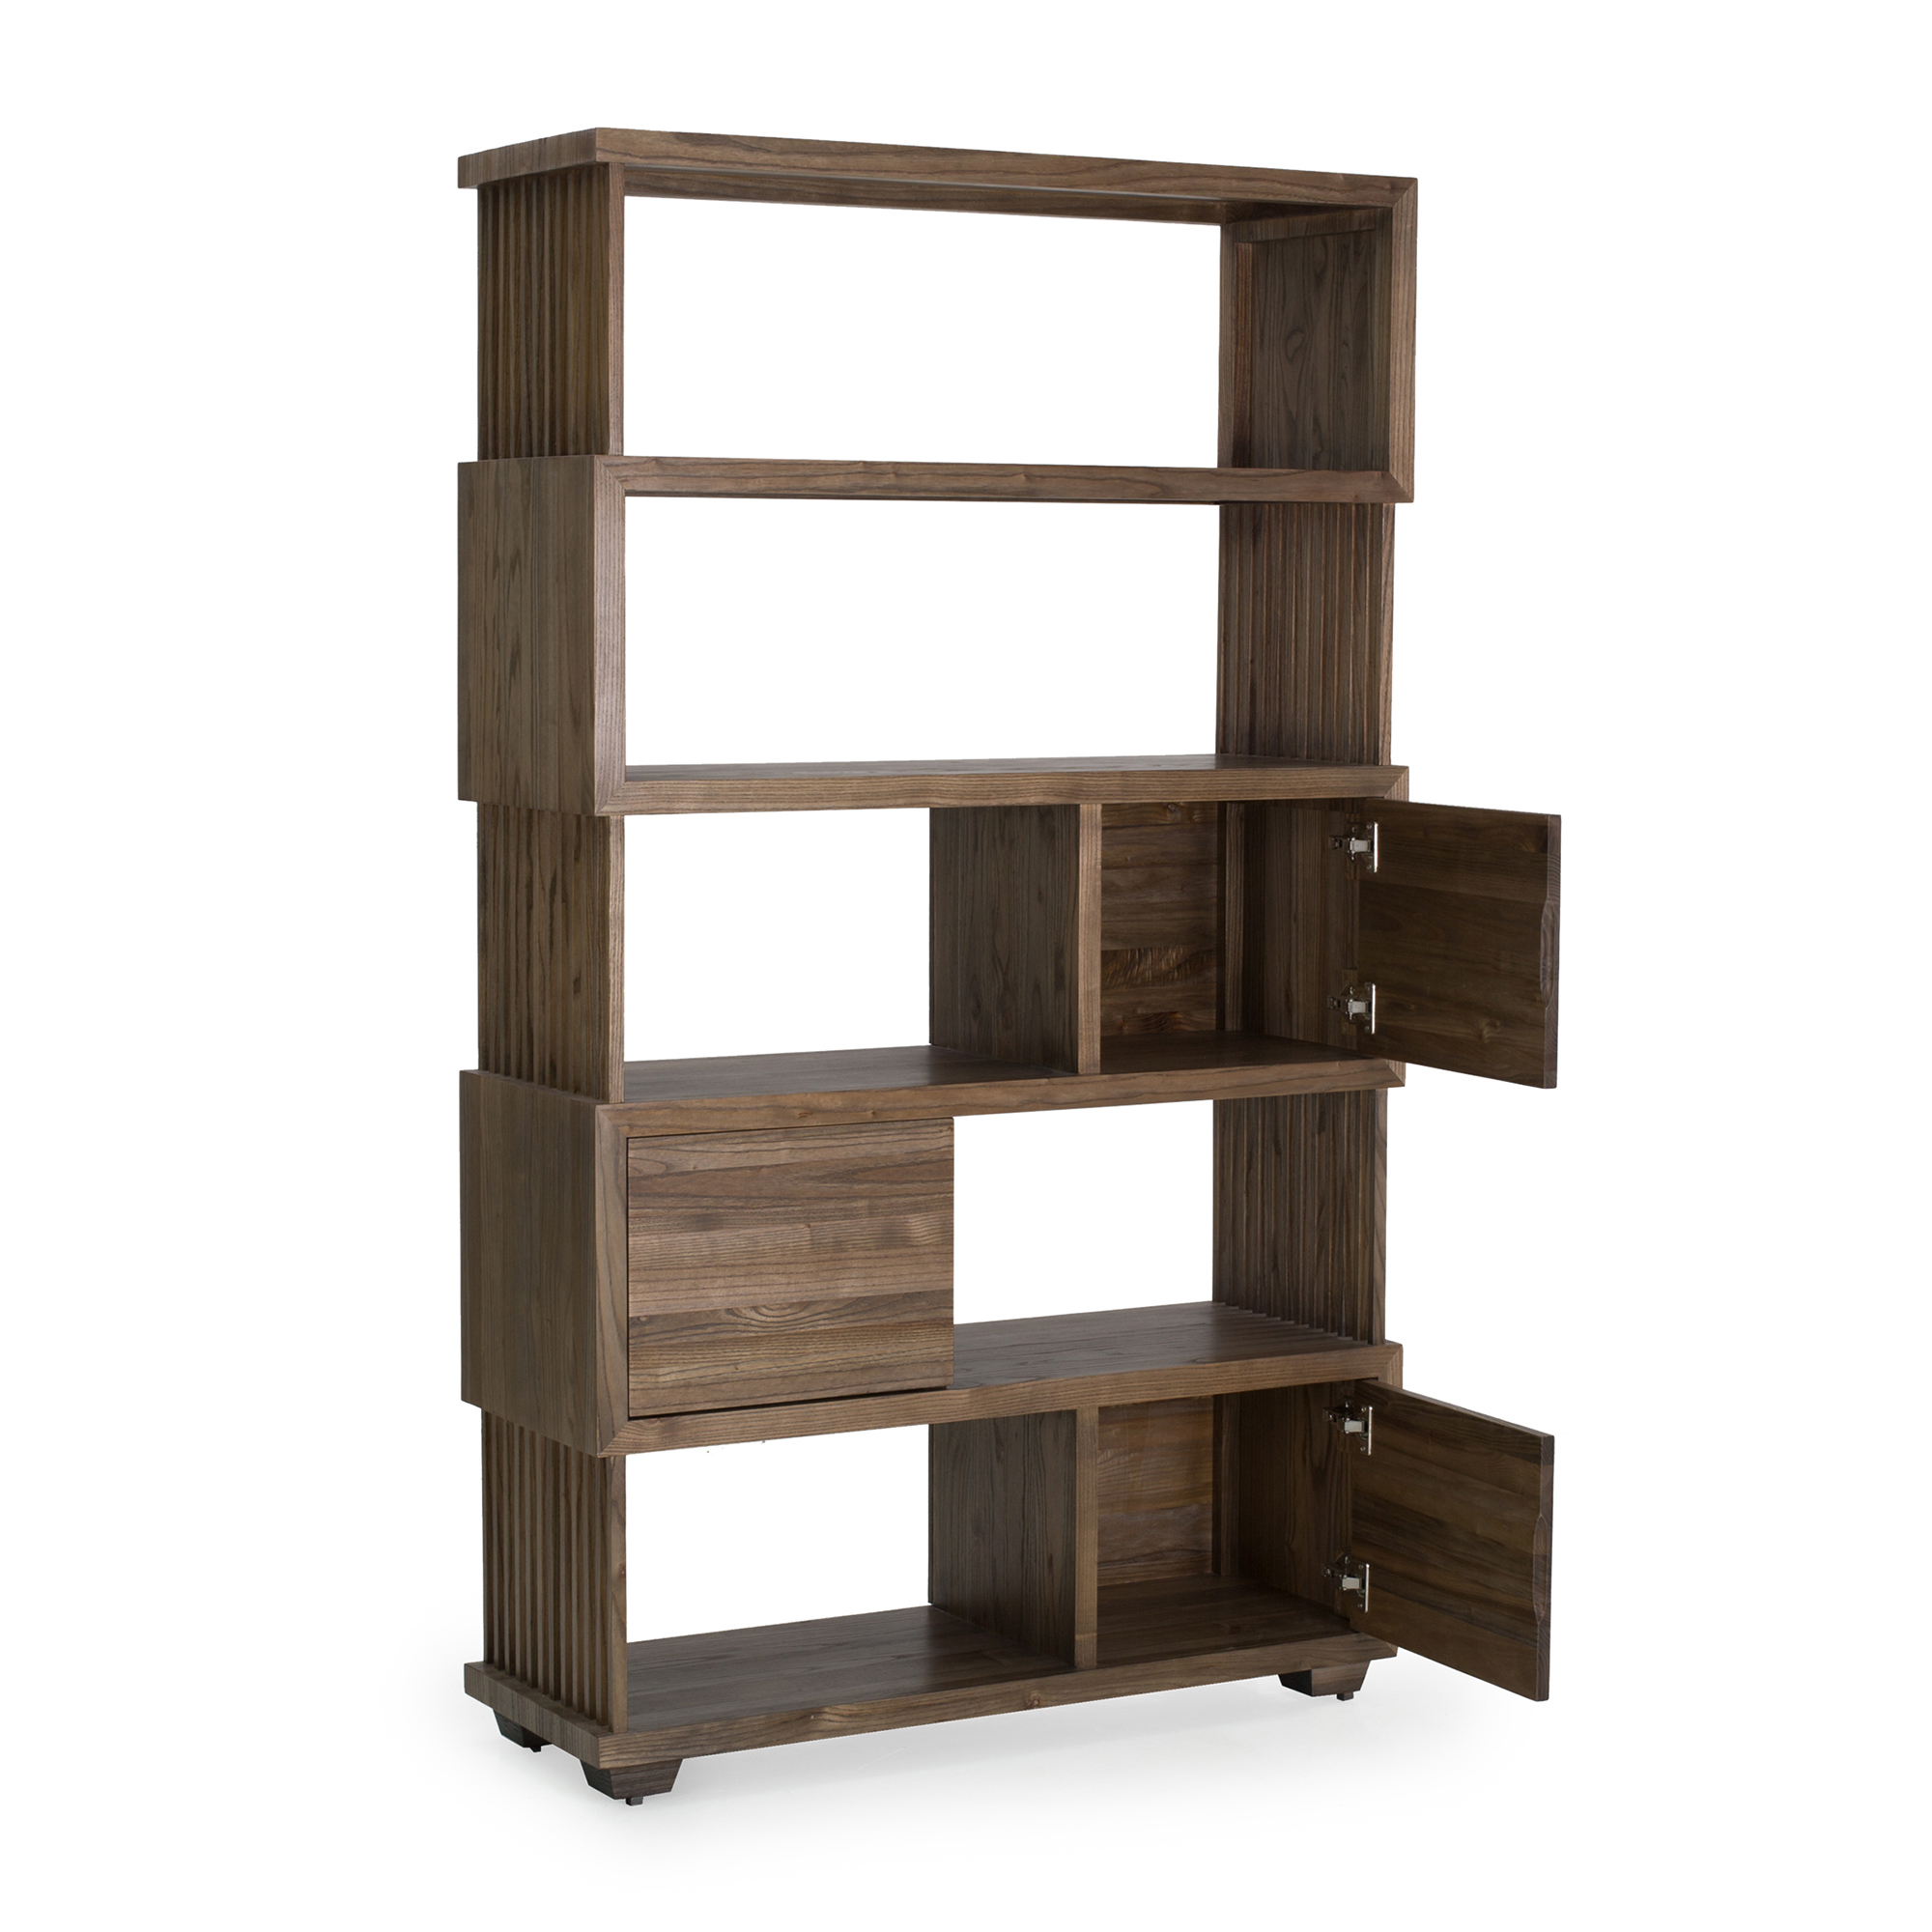 bookcases glass sliding with free home lane black garden ameriwood bookcase overstock doors shipping today product aaron navy